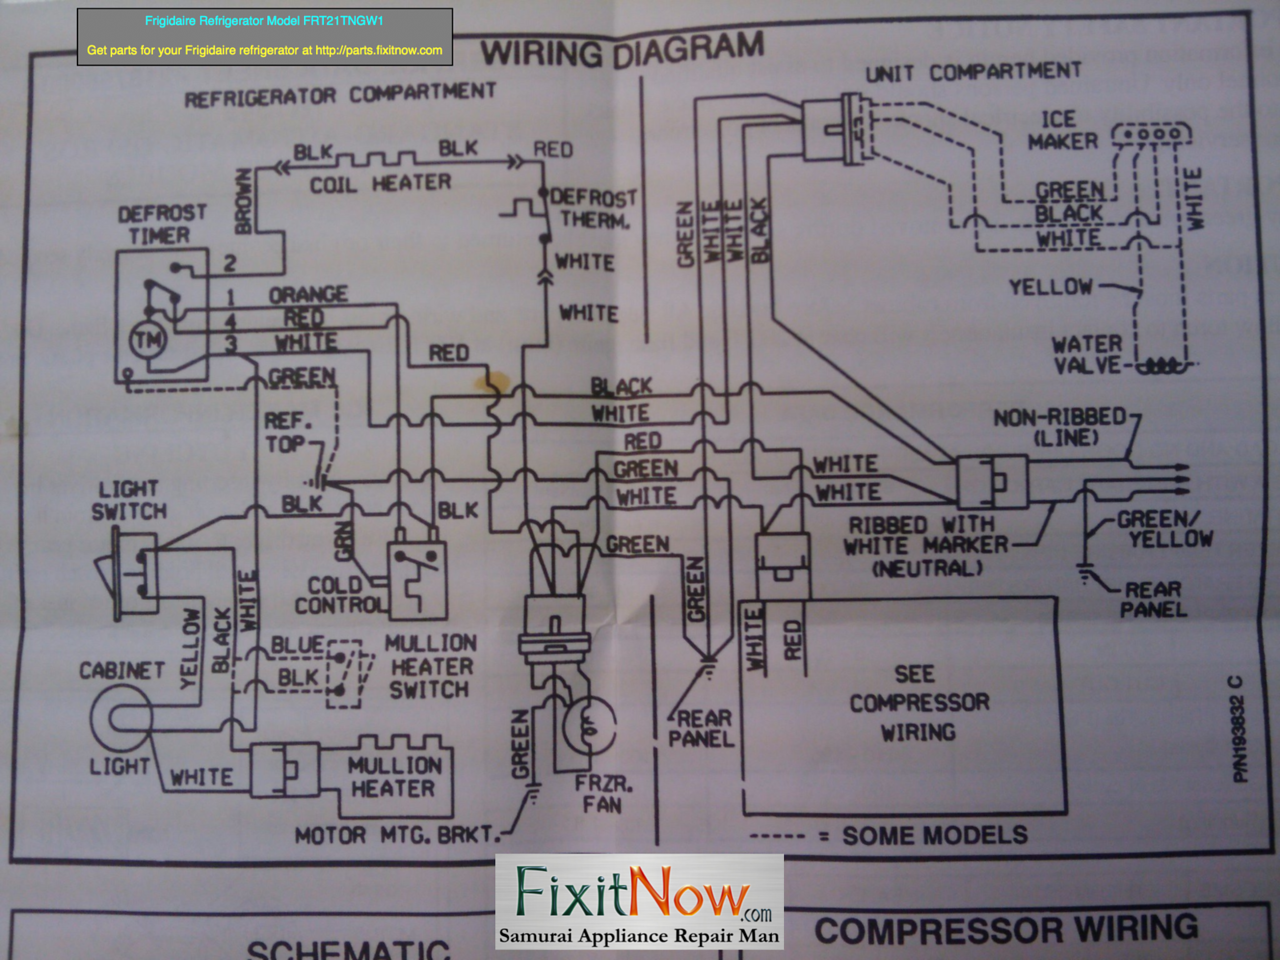 Wiring diagrams and schematics appliantology frigidaire refrigerator model frt21tngw1 wiring diagram asfbconference2016 Gallery